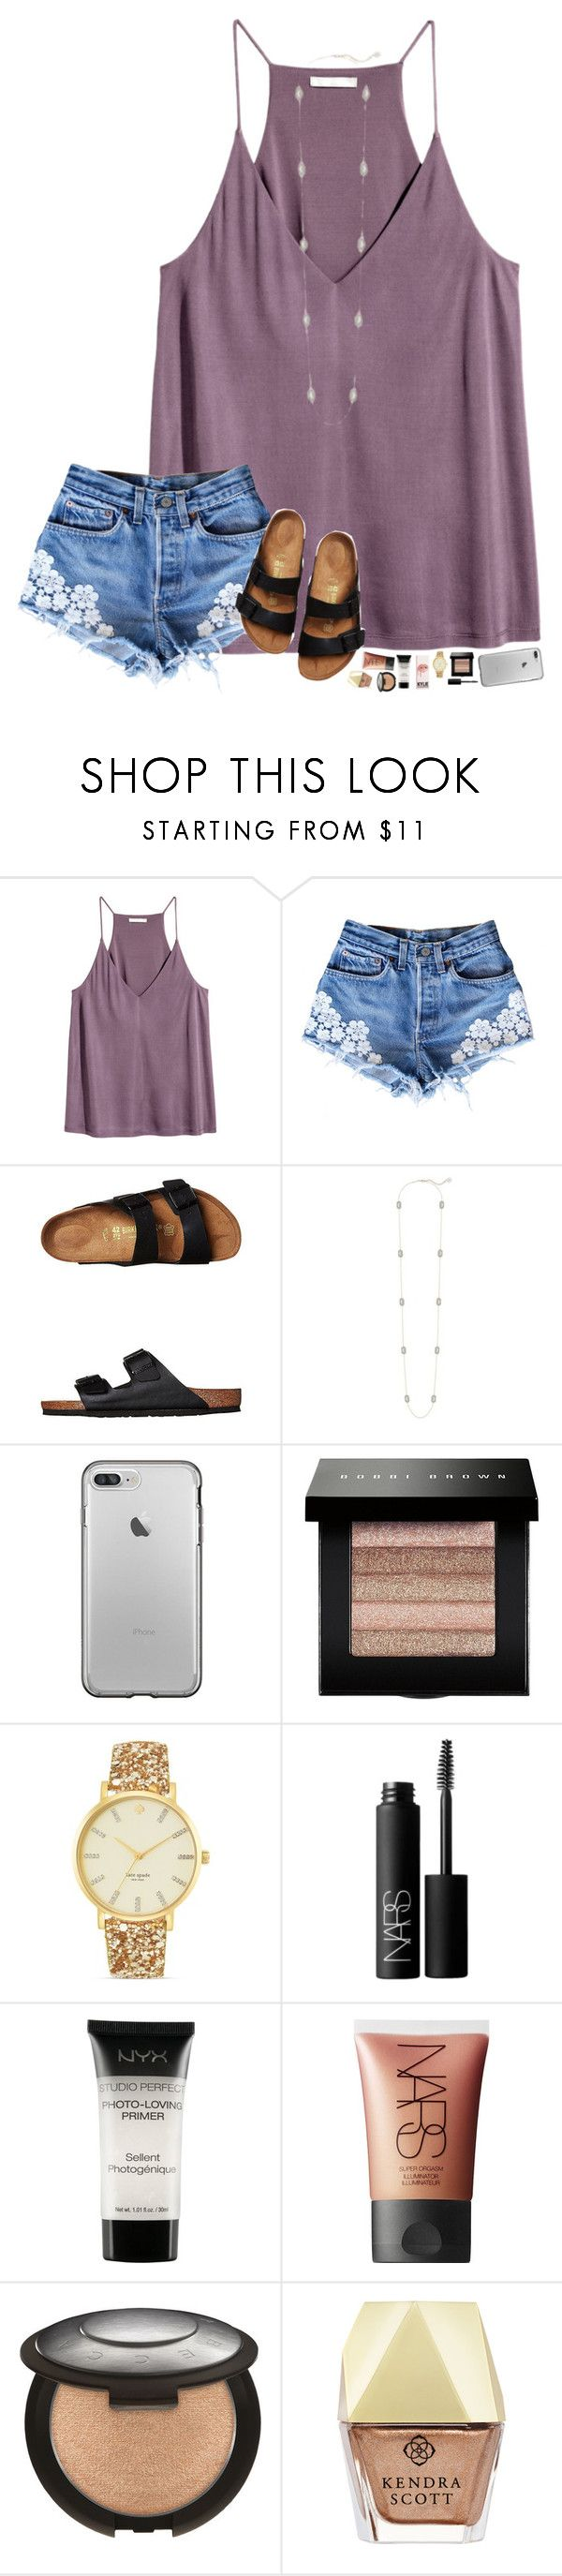 """friday & 81°"" by hopemarlee ❤ liked on Polyvore featuring Birkenstock, Kendra Scott, Bobbi Brown Cosmetics, Kate Spade, NARS Cosmetics, NYX and hmsloves"